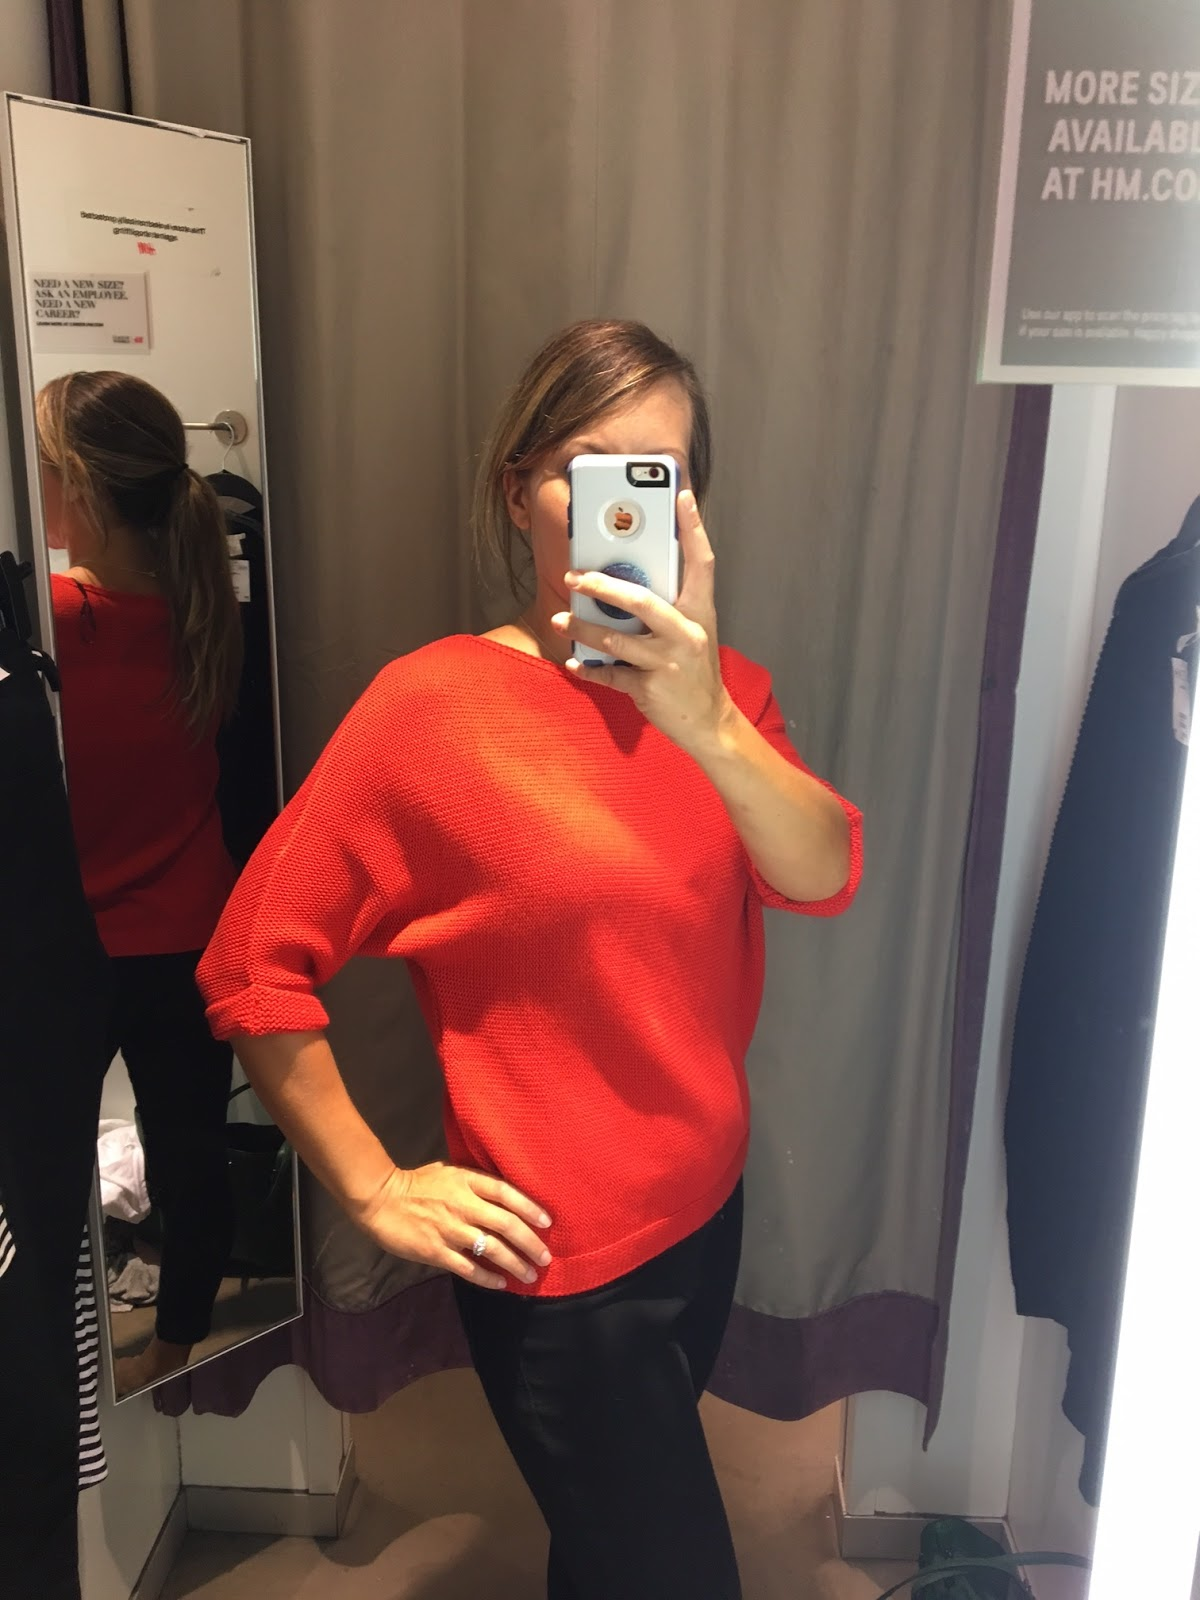 Clothes, Shoes & Accessories Tops & Shirts H&m Mamma Medium Maternity Jumpers